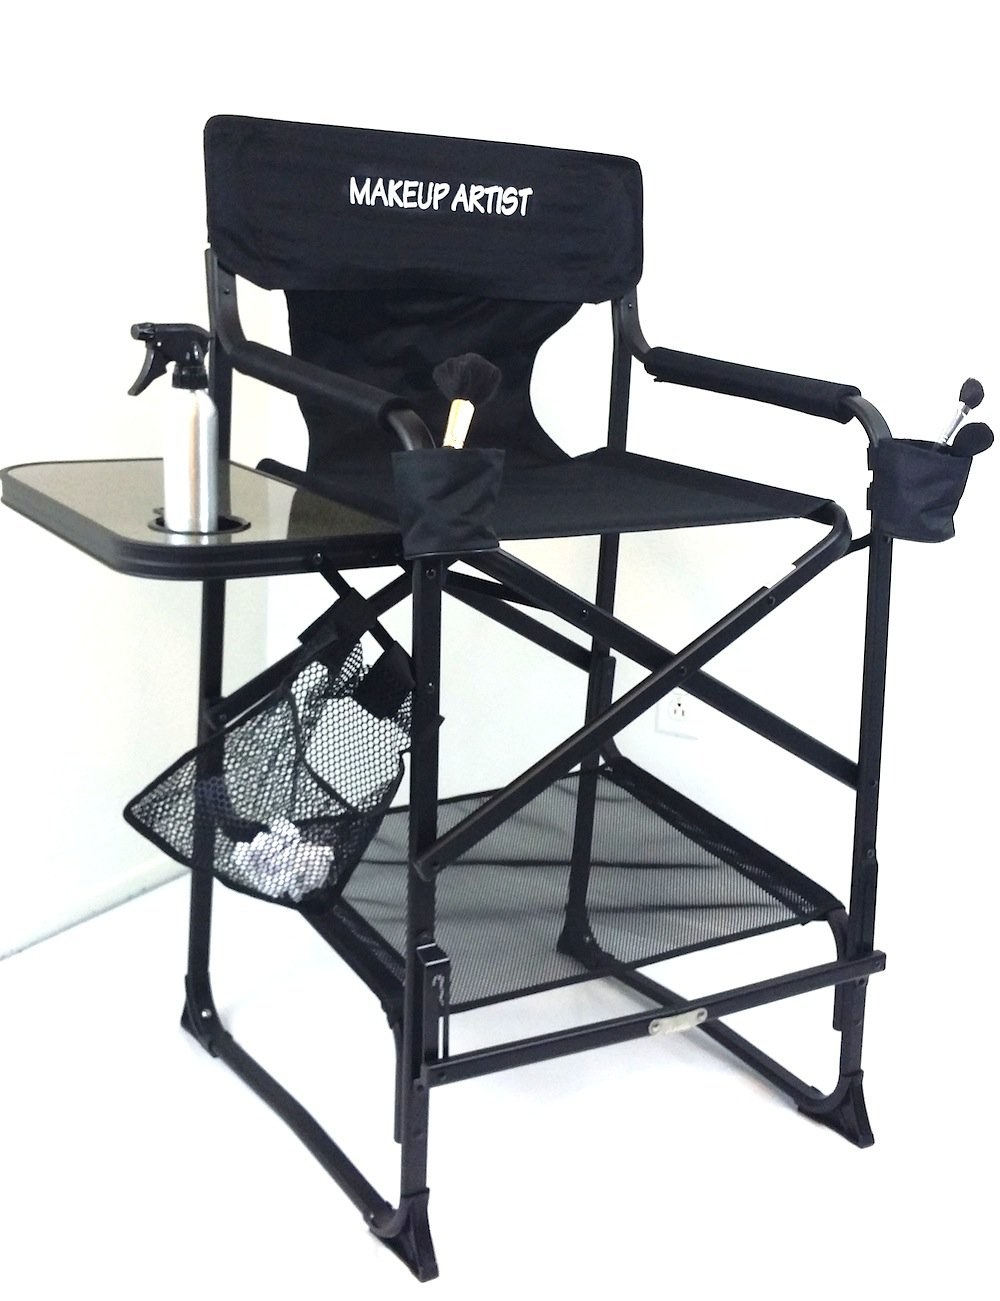 TUSCANYPRO MakeUp Artist ''Big Daddy'' HEAVY DUTY Tall PRO Chair-10 Years Warranty PRODUCT-A BONUS MAKE UP CASE INCLUDED WITH YOUR CHAIR!!!BIGGER,WIDER AND BETTER..350 Lb Max Weight Cap. by Oasis